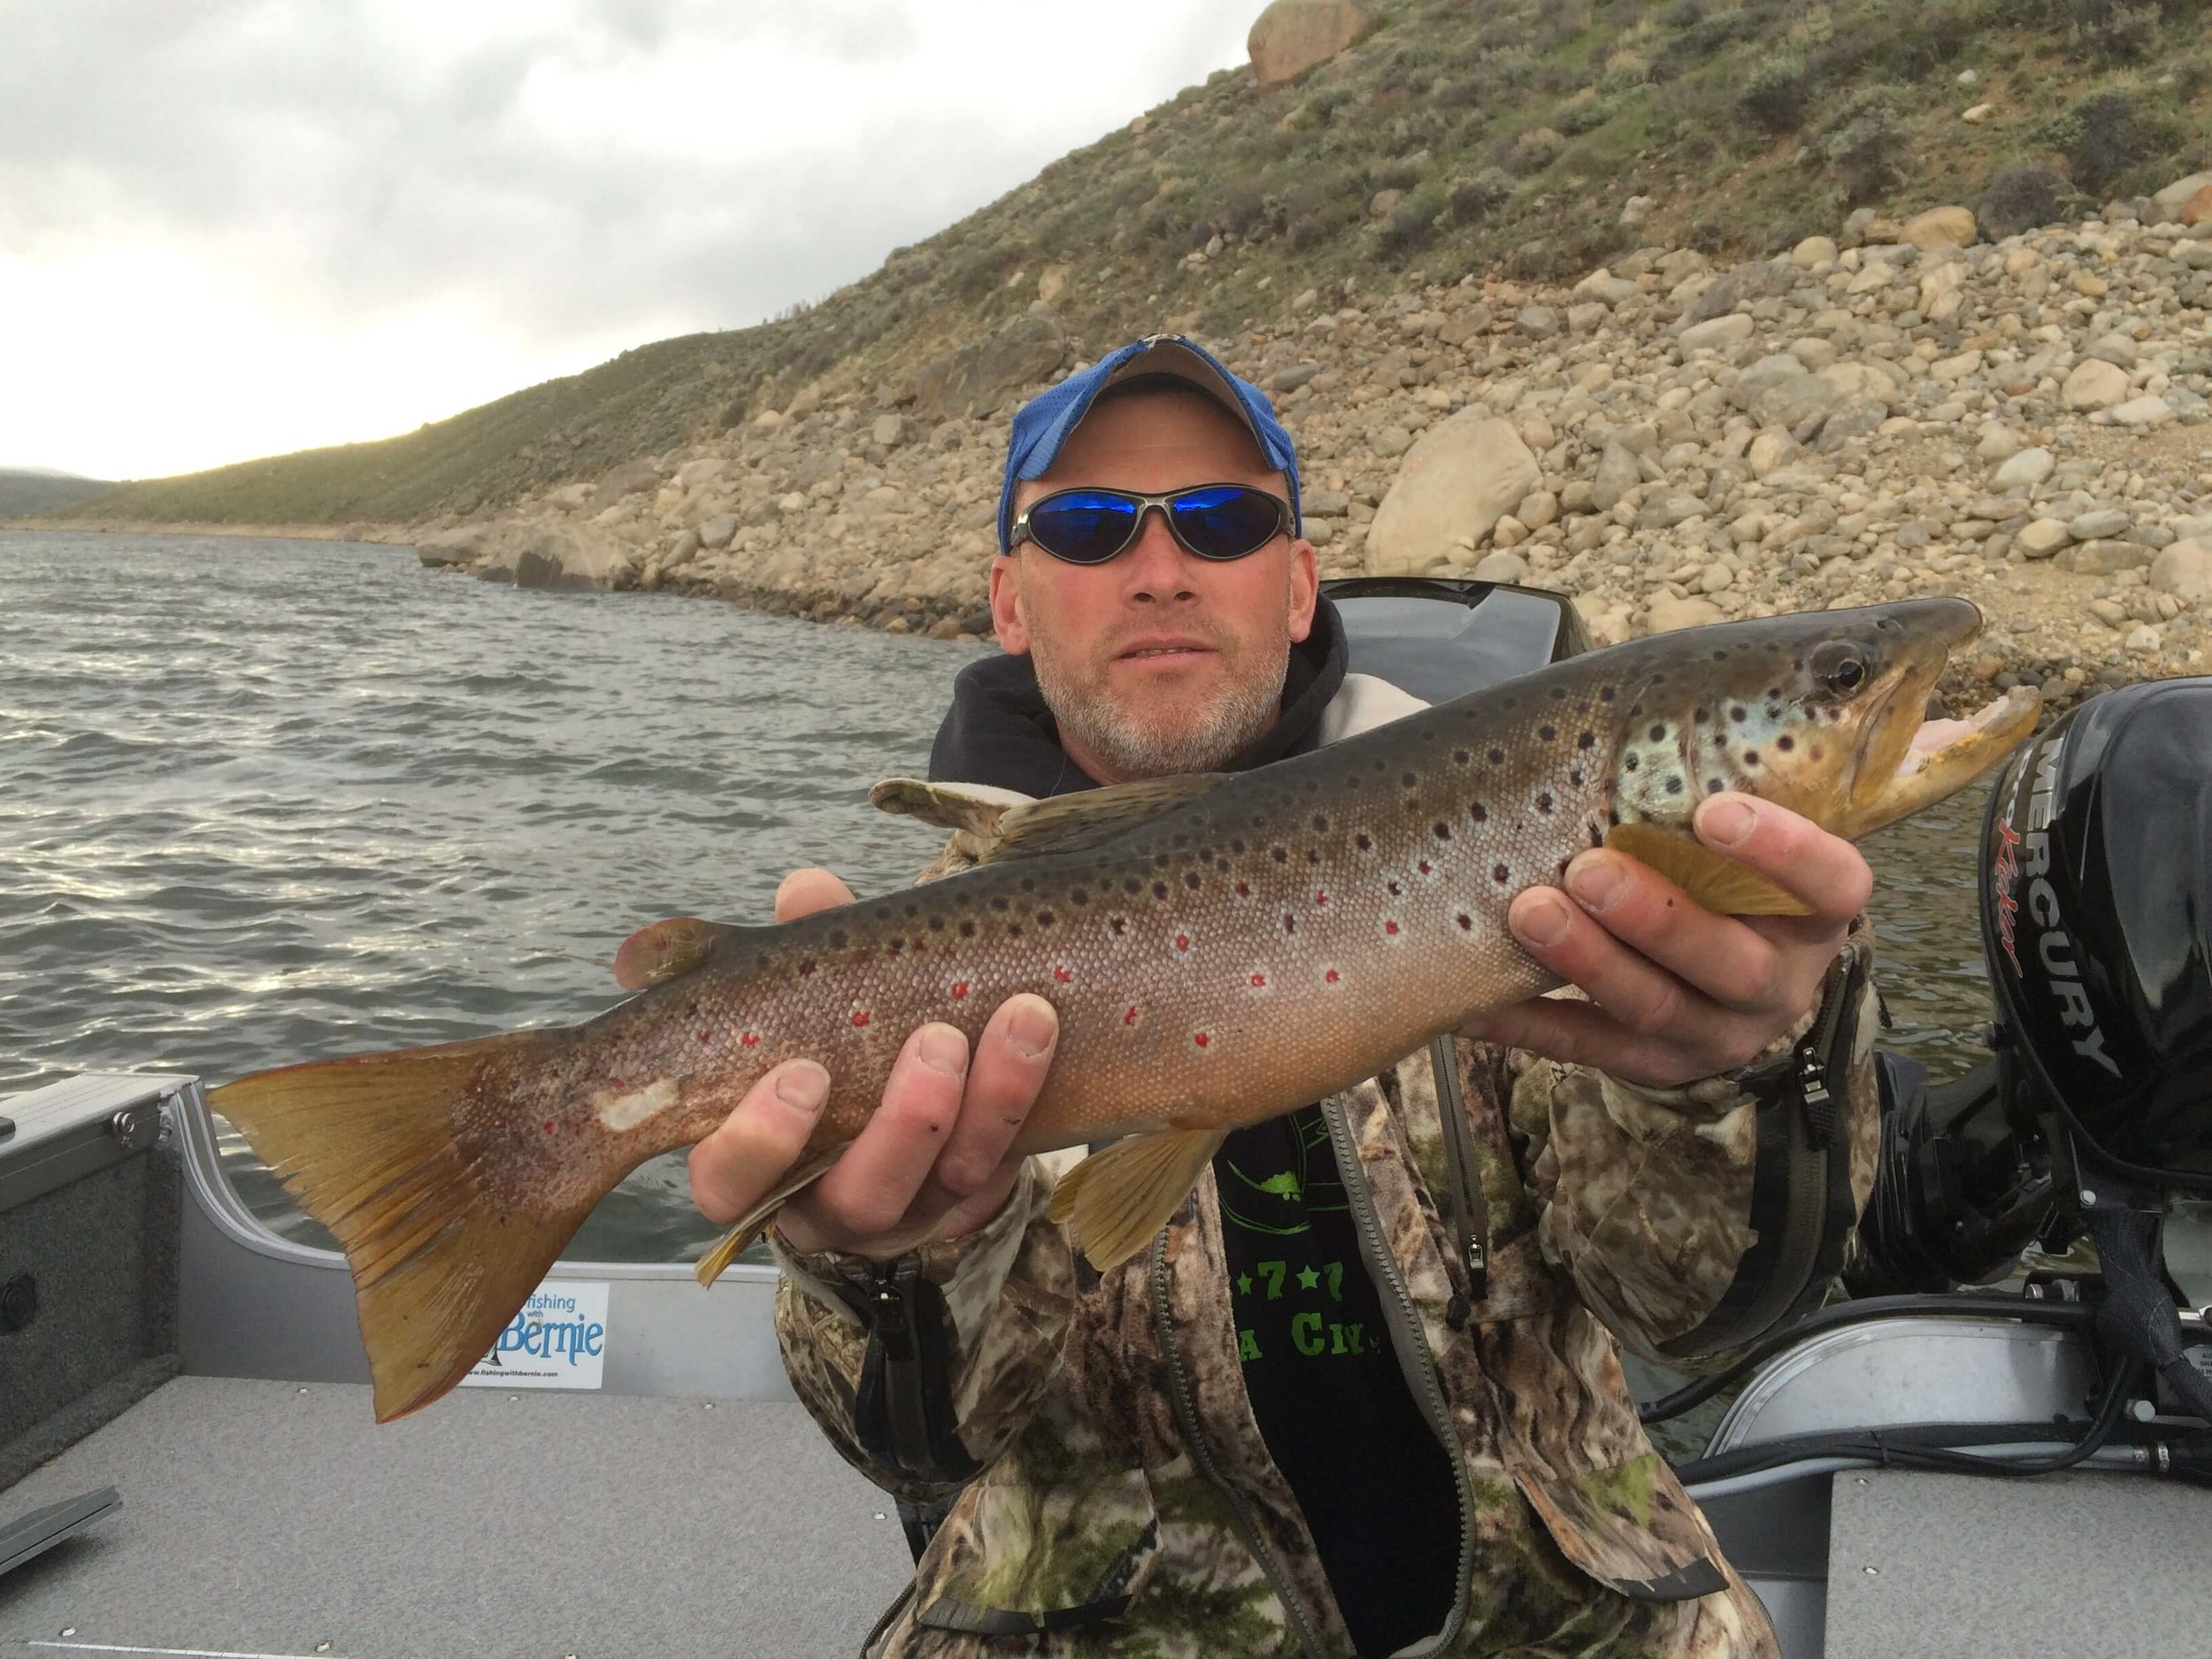 WELCOME   Fishing With Bernie   Call  970-531-2318  Get ready for the experience of a lifetime!    Book Your Trip